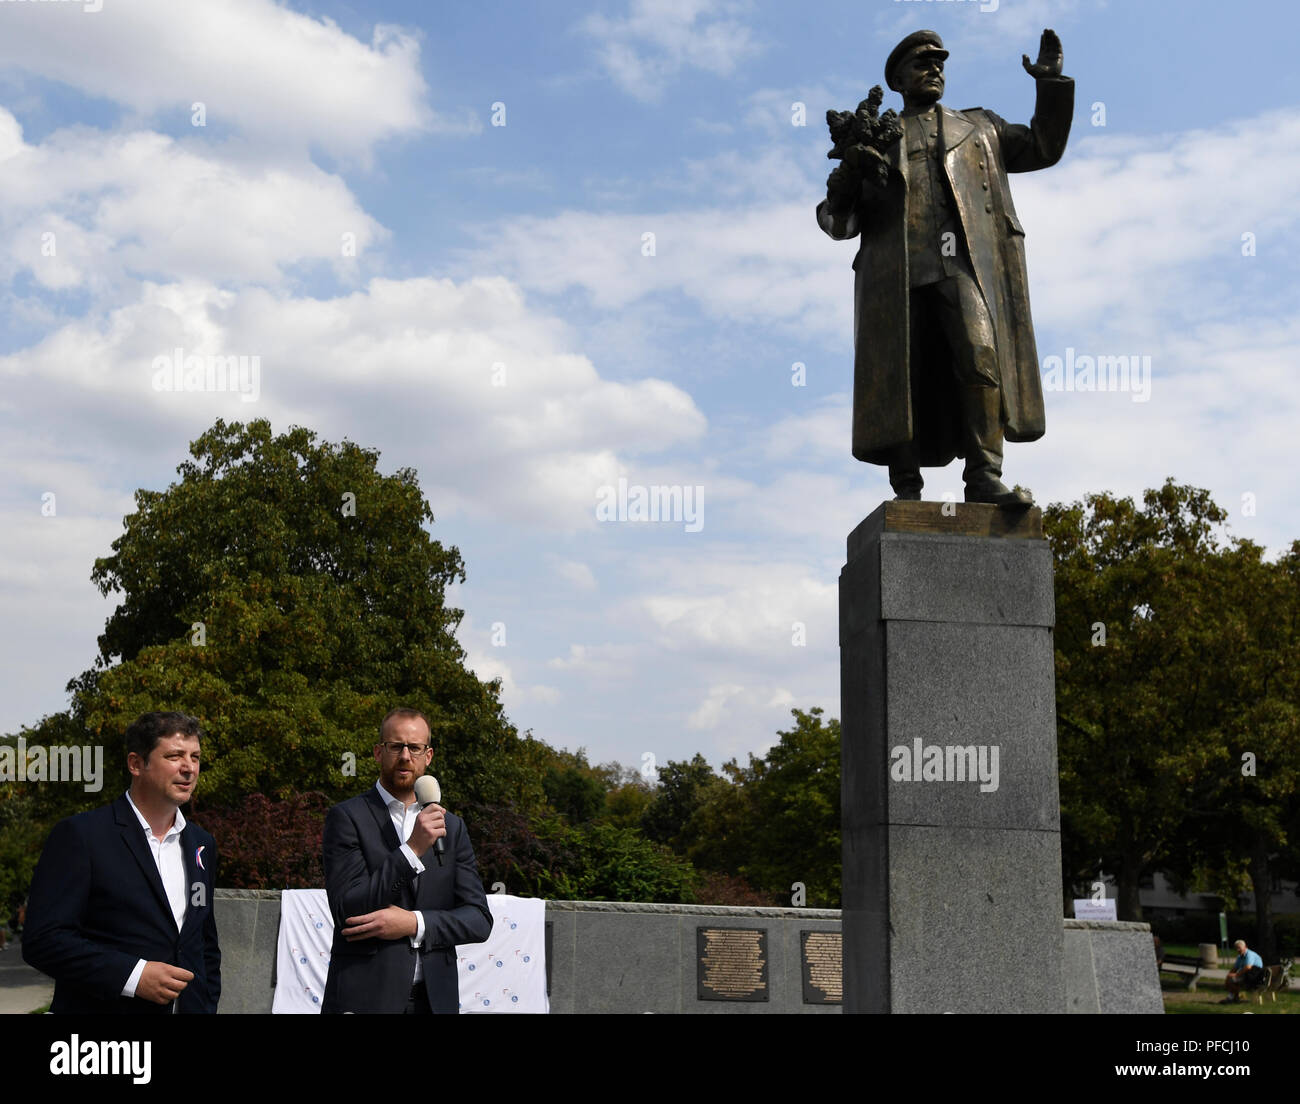 Prague, Czech Republic. 21st Aug, 2018. Unveiling of restored memorial to Soviet Marshal Konev with new plaques describing his life and work was held in Prague, Czech Republic, on August 21, 2018, day of the 50th anniversary of Warsaw Pact invasion in August 1968 to Czechoslovakia. On the photo speaks Ondrej Kolar, Mayor of Prague 6 and on the left side is seen his deputy Jan Lacina. Credit: Michal Krumphanzl/CTK Photo/Alamy Live News - Stock Image